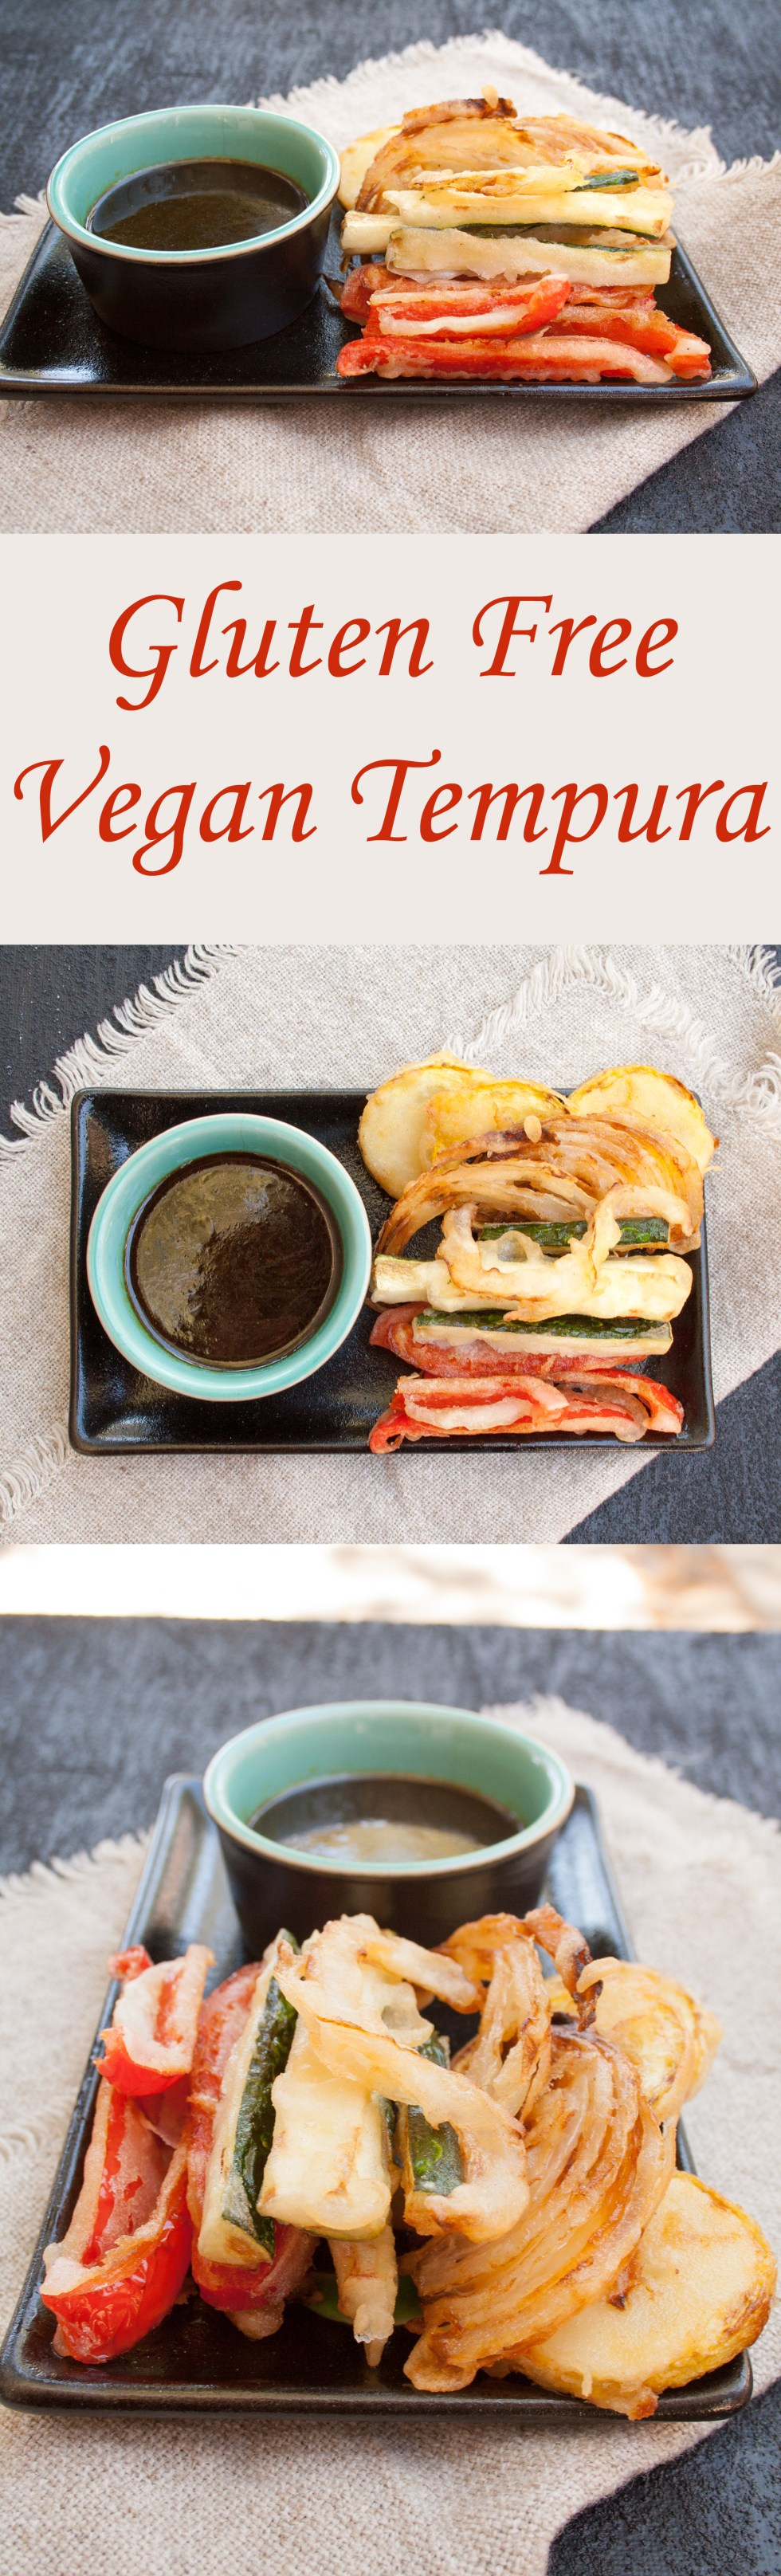 Gluten Free Vegan Tempura - These tempura vegetables are crispy and satisfying. Eat them with a sweet or savory dipping sauce.